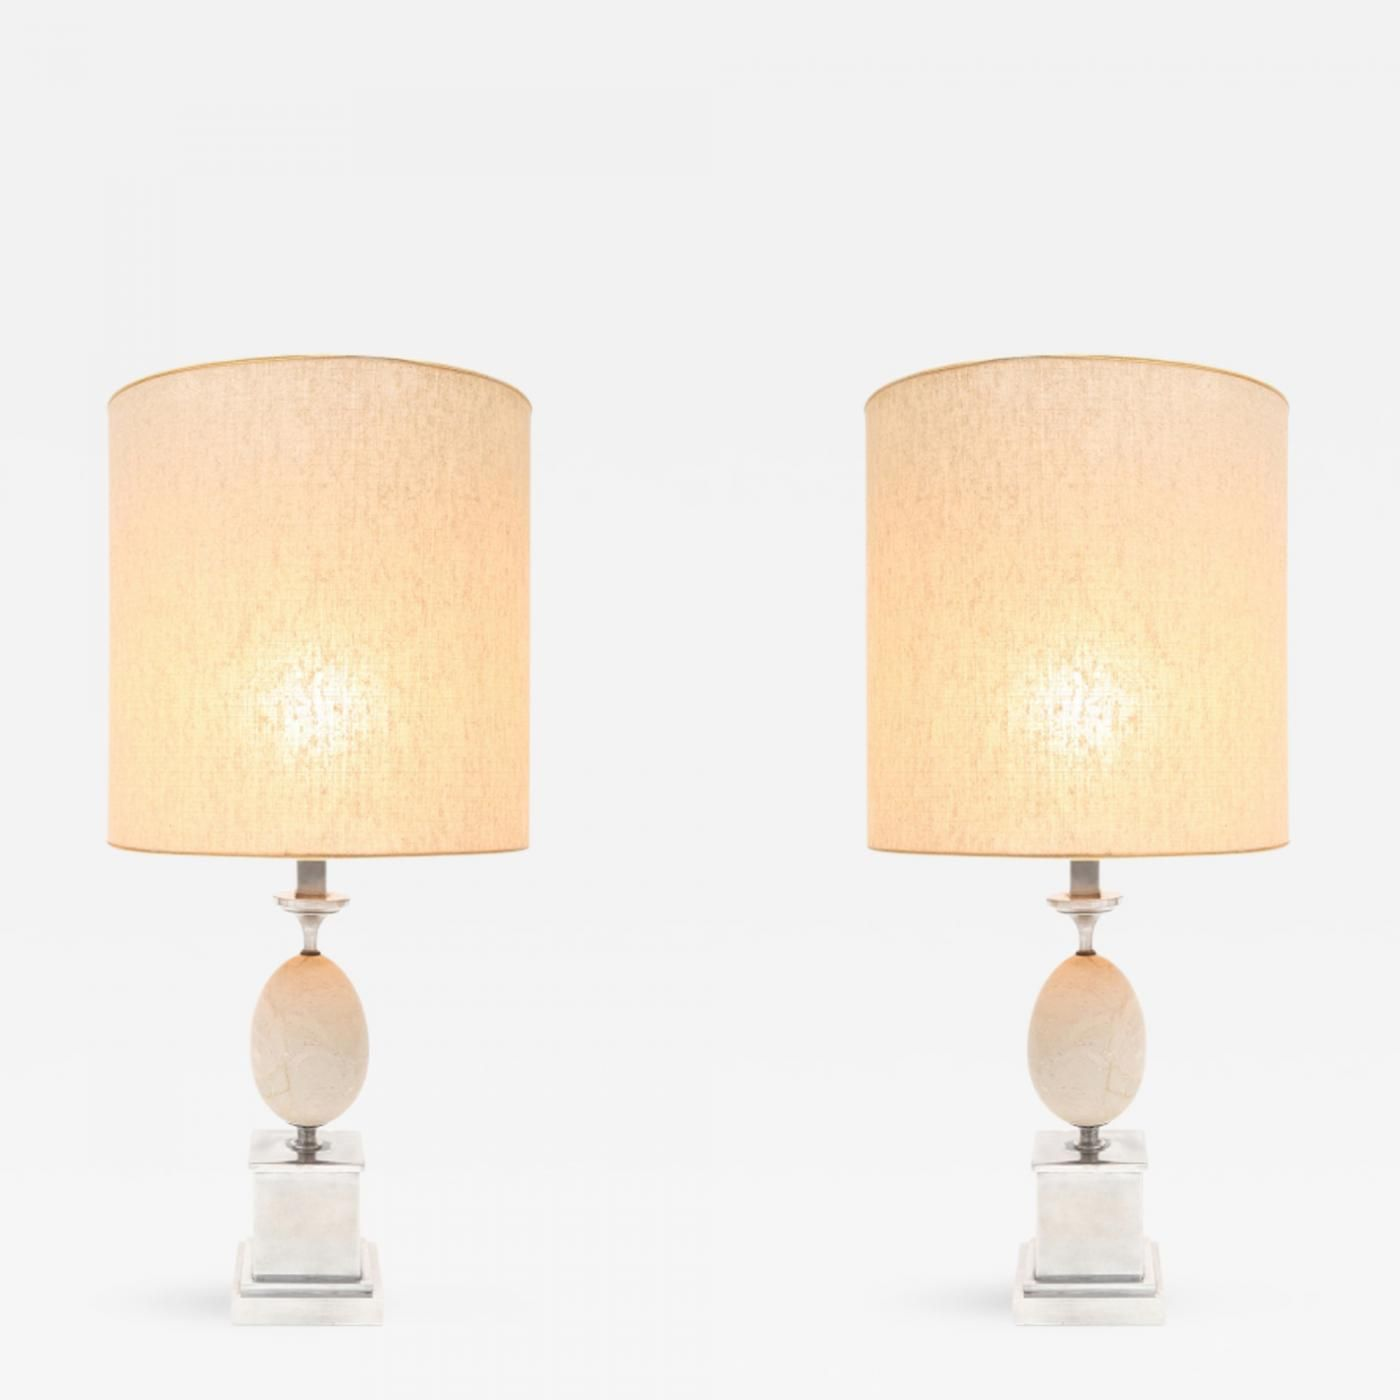 Philippe  Barbier - Pair of Table Lamp Maison Barbier offered by Goldwood Interiors  on InCollect